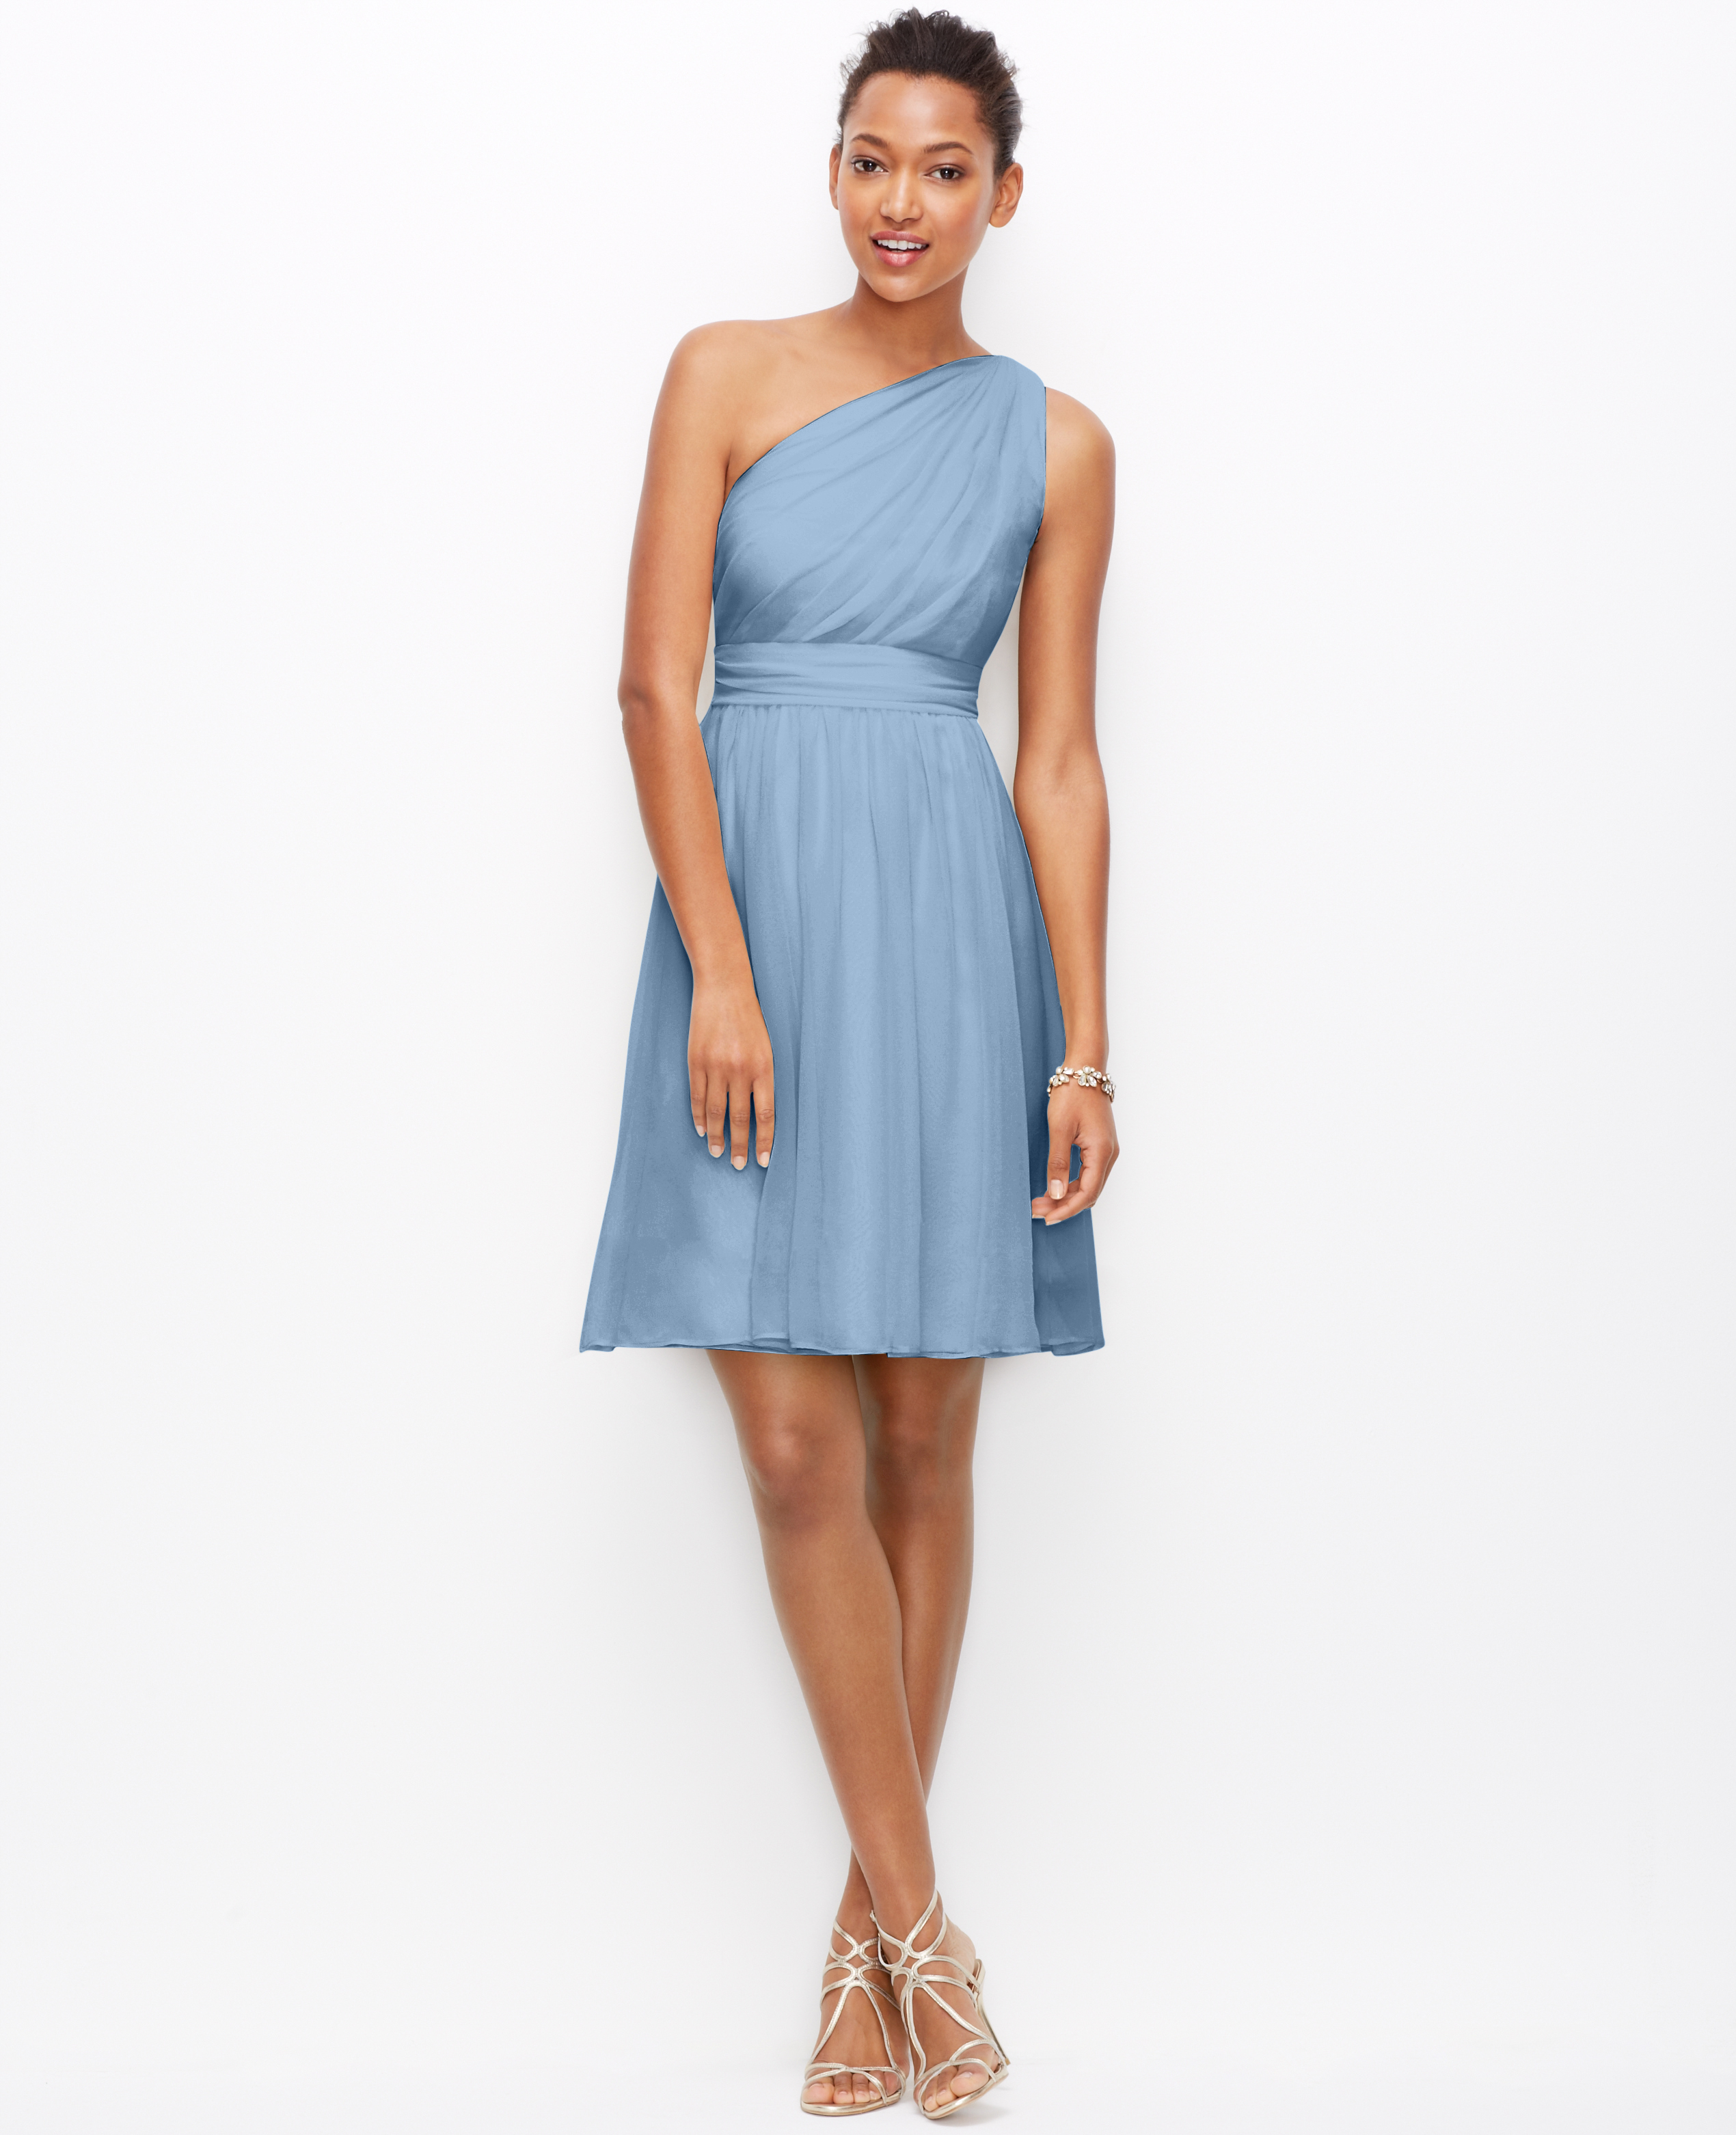 Lyst - Ann Taylor Silk Georgette One Shoulder Dress in Blue